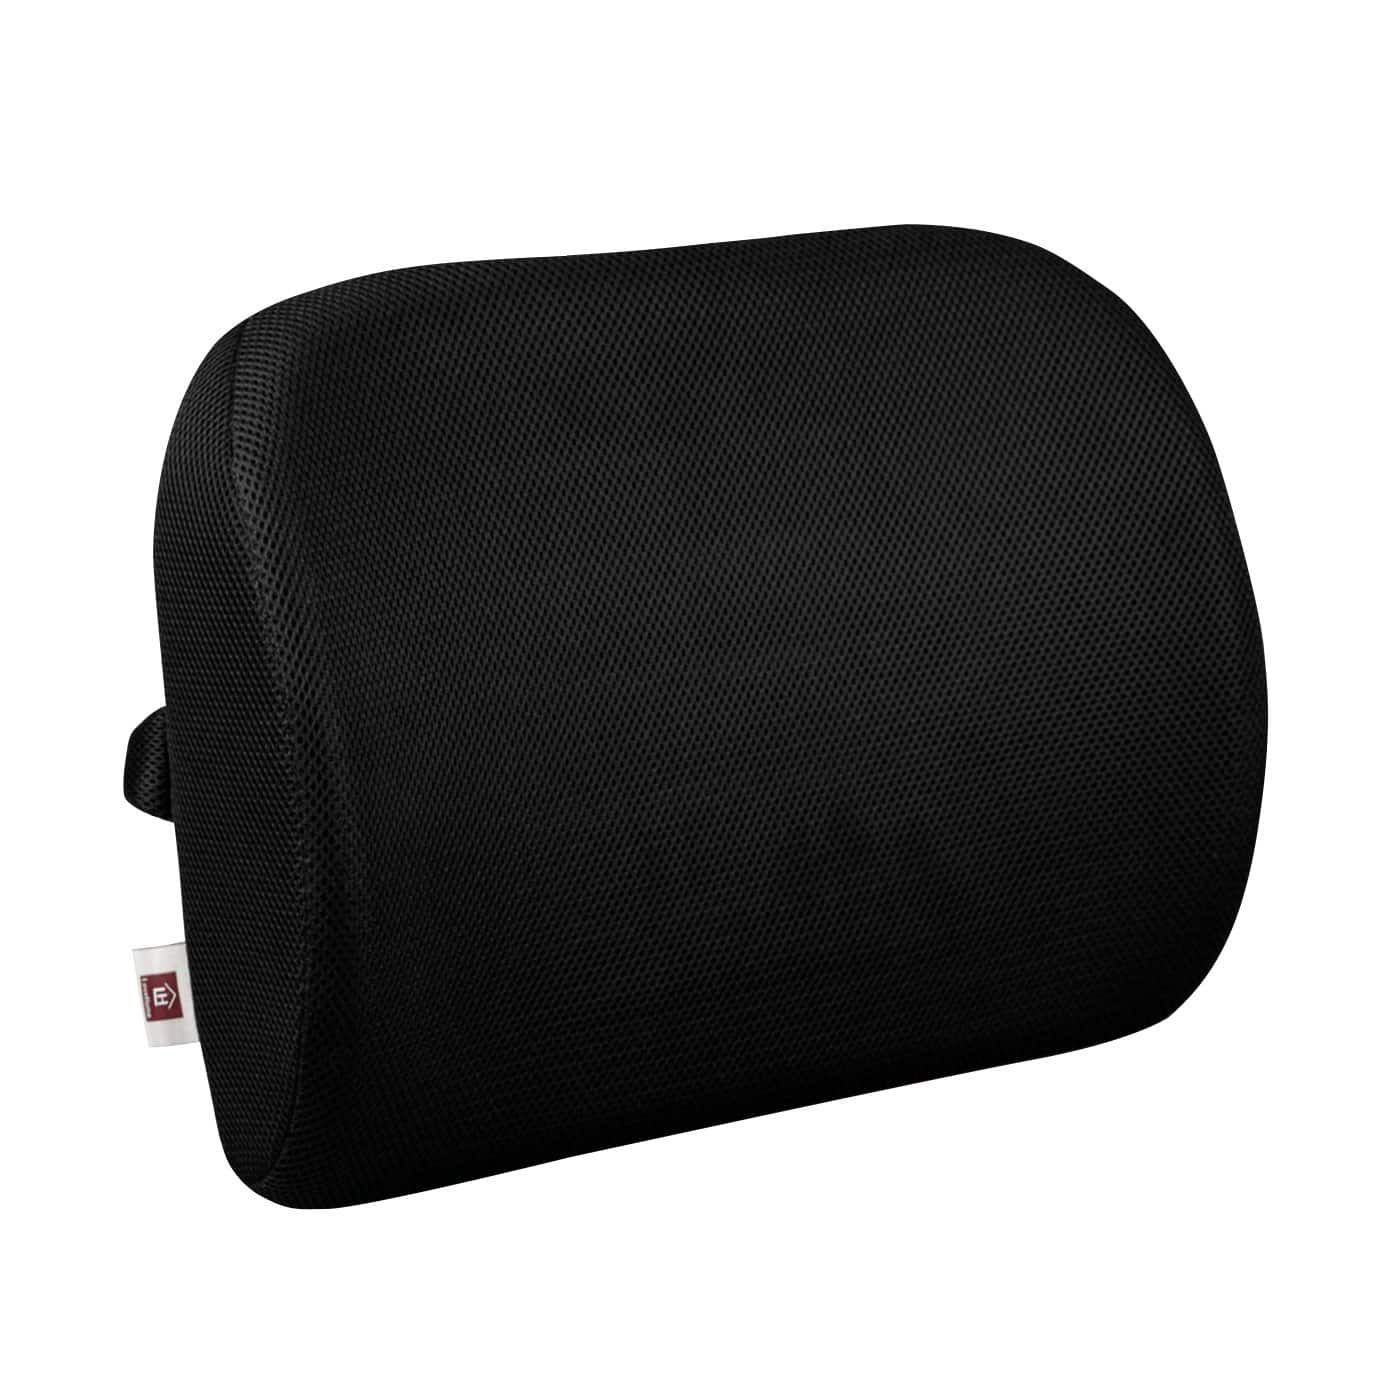 Lumbar Support Back Cushion For Office Chair With 3-way Fixation Strap - $13.95